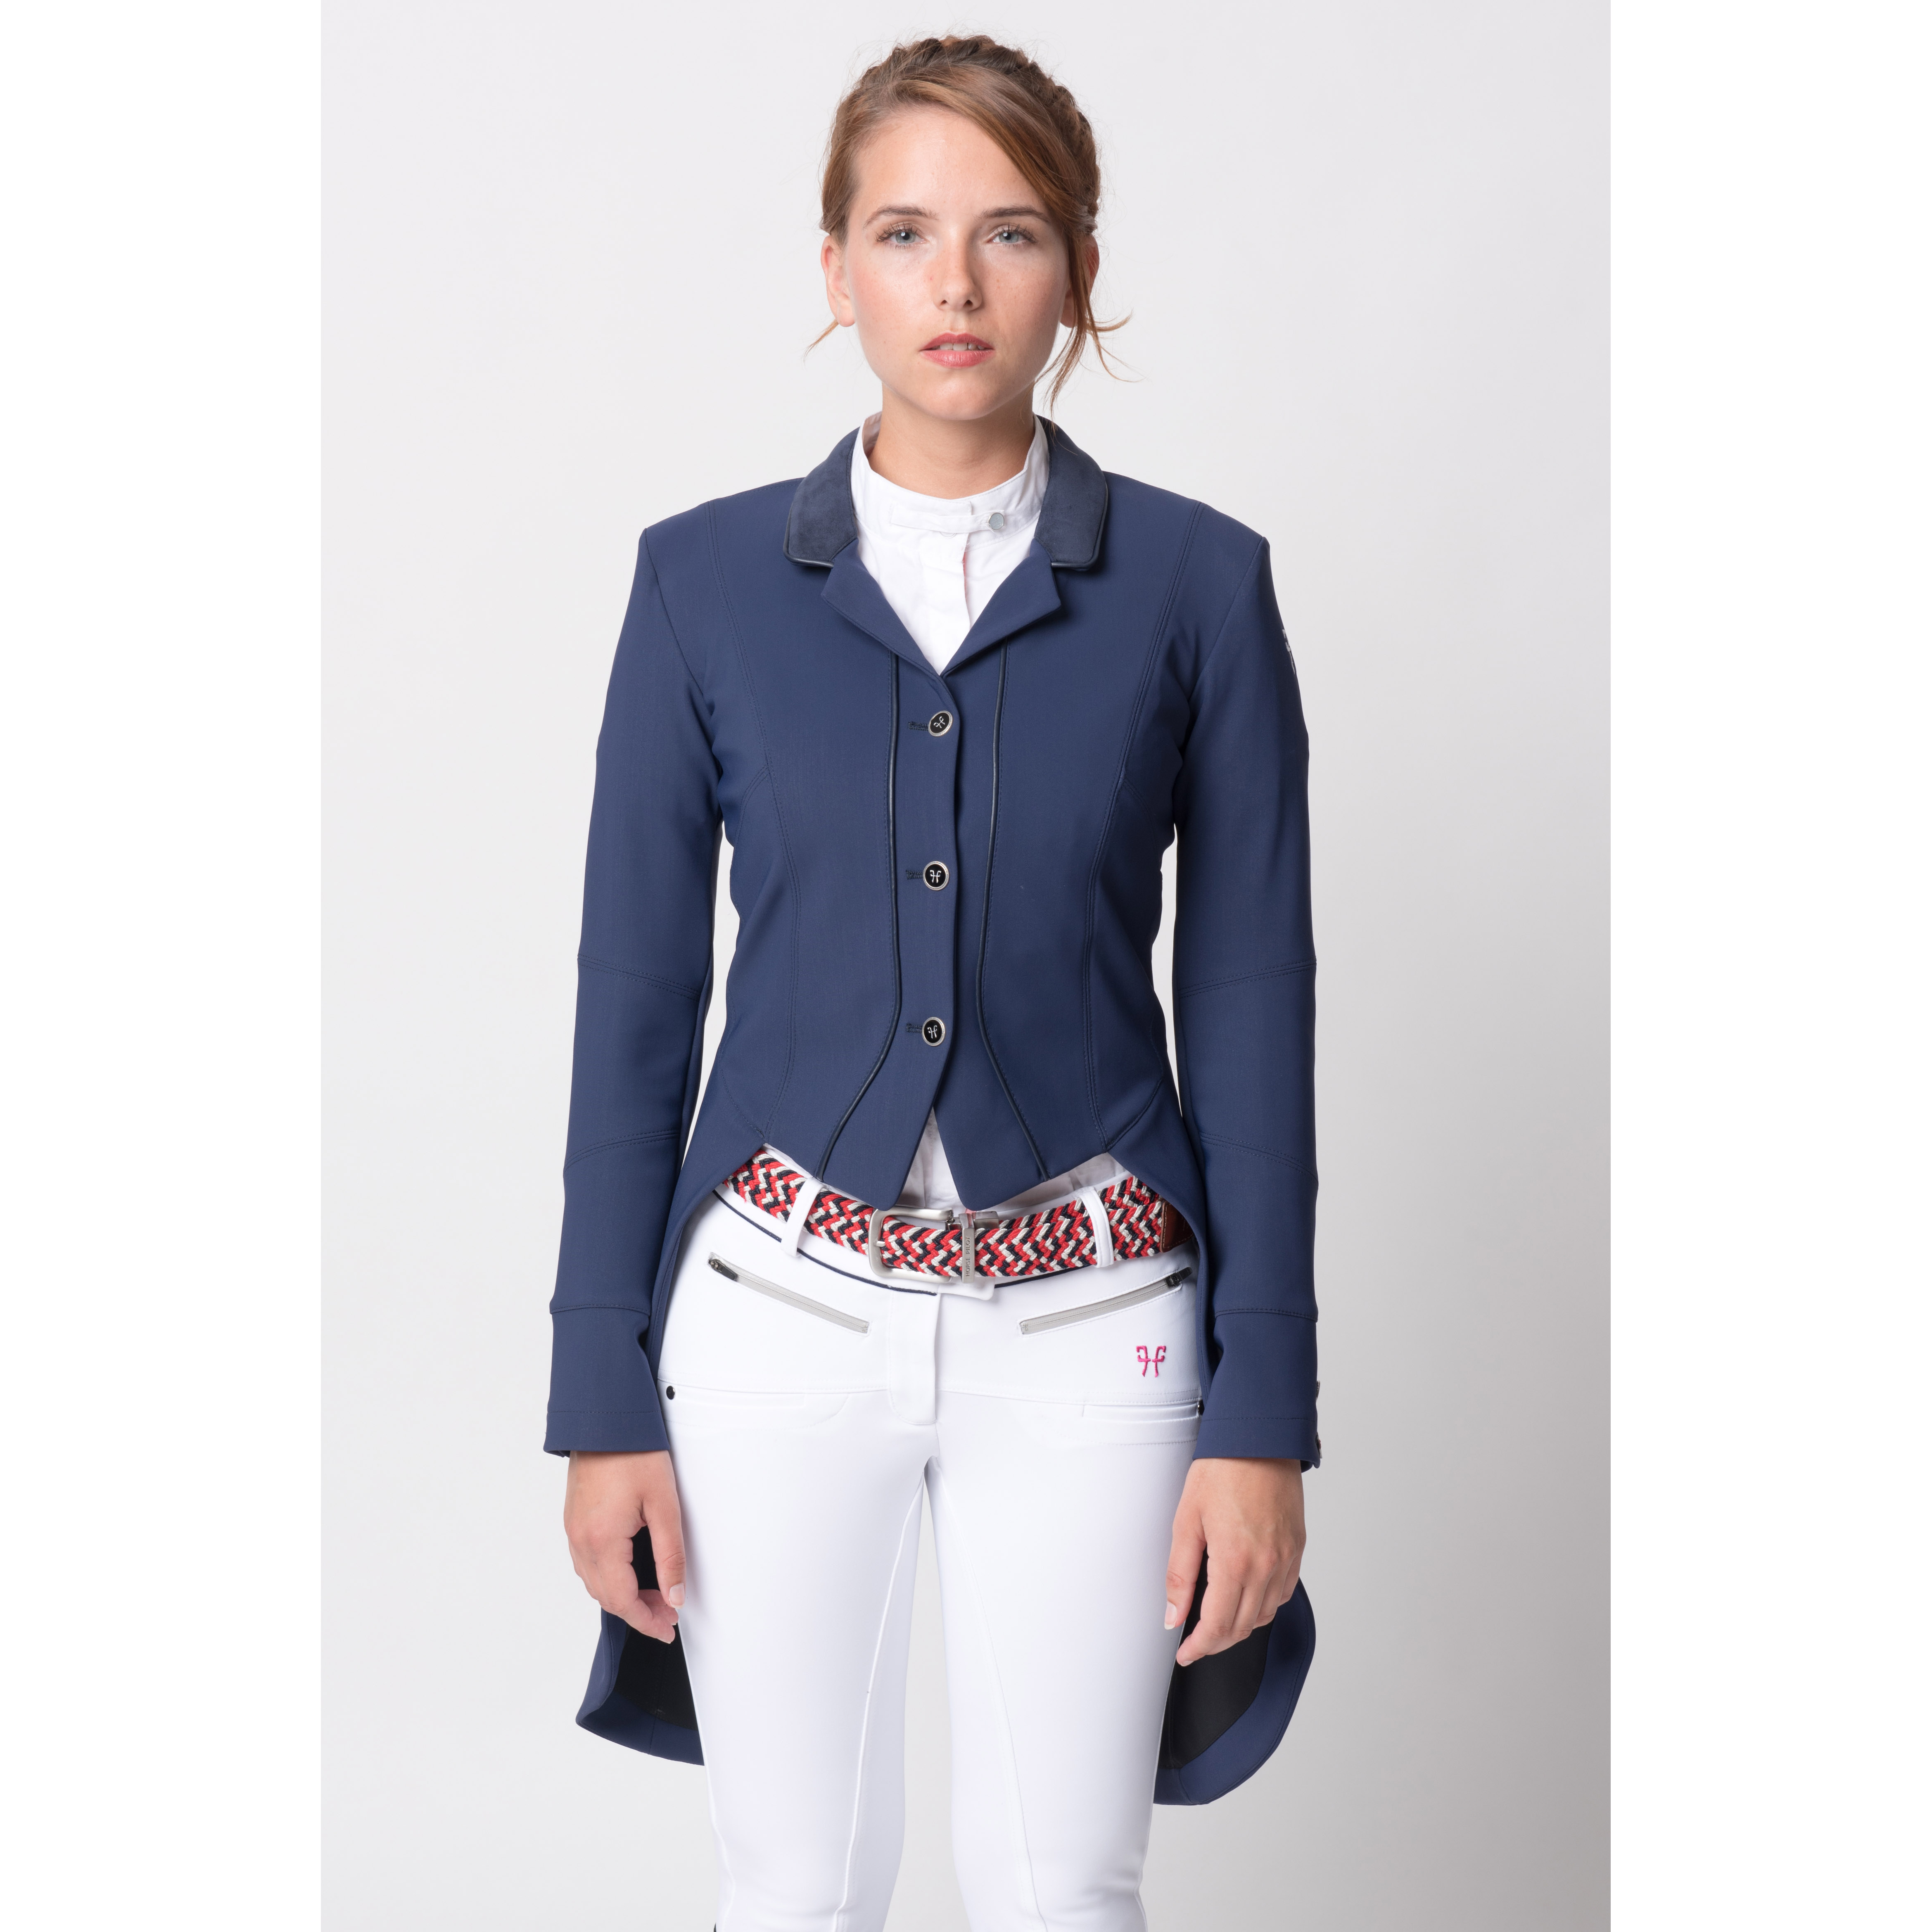 Horse Pilot Ladies Dressage Frac Jacket Royal Equestrian